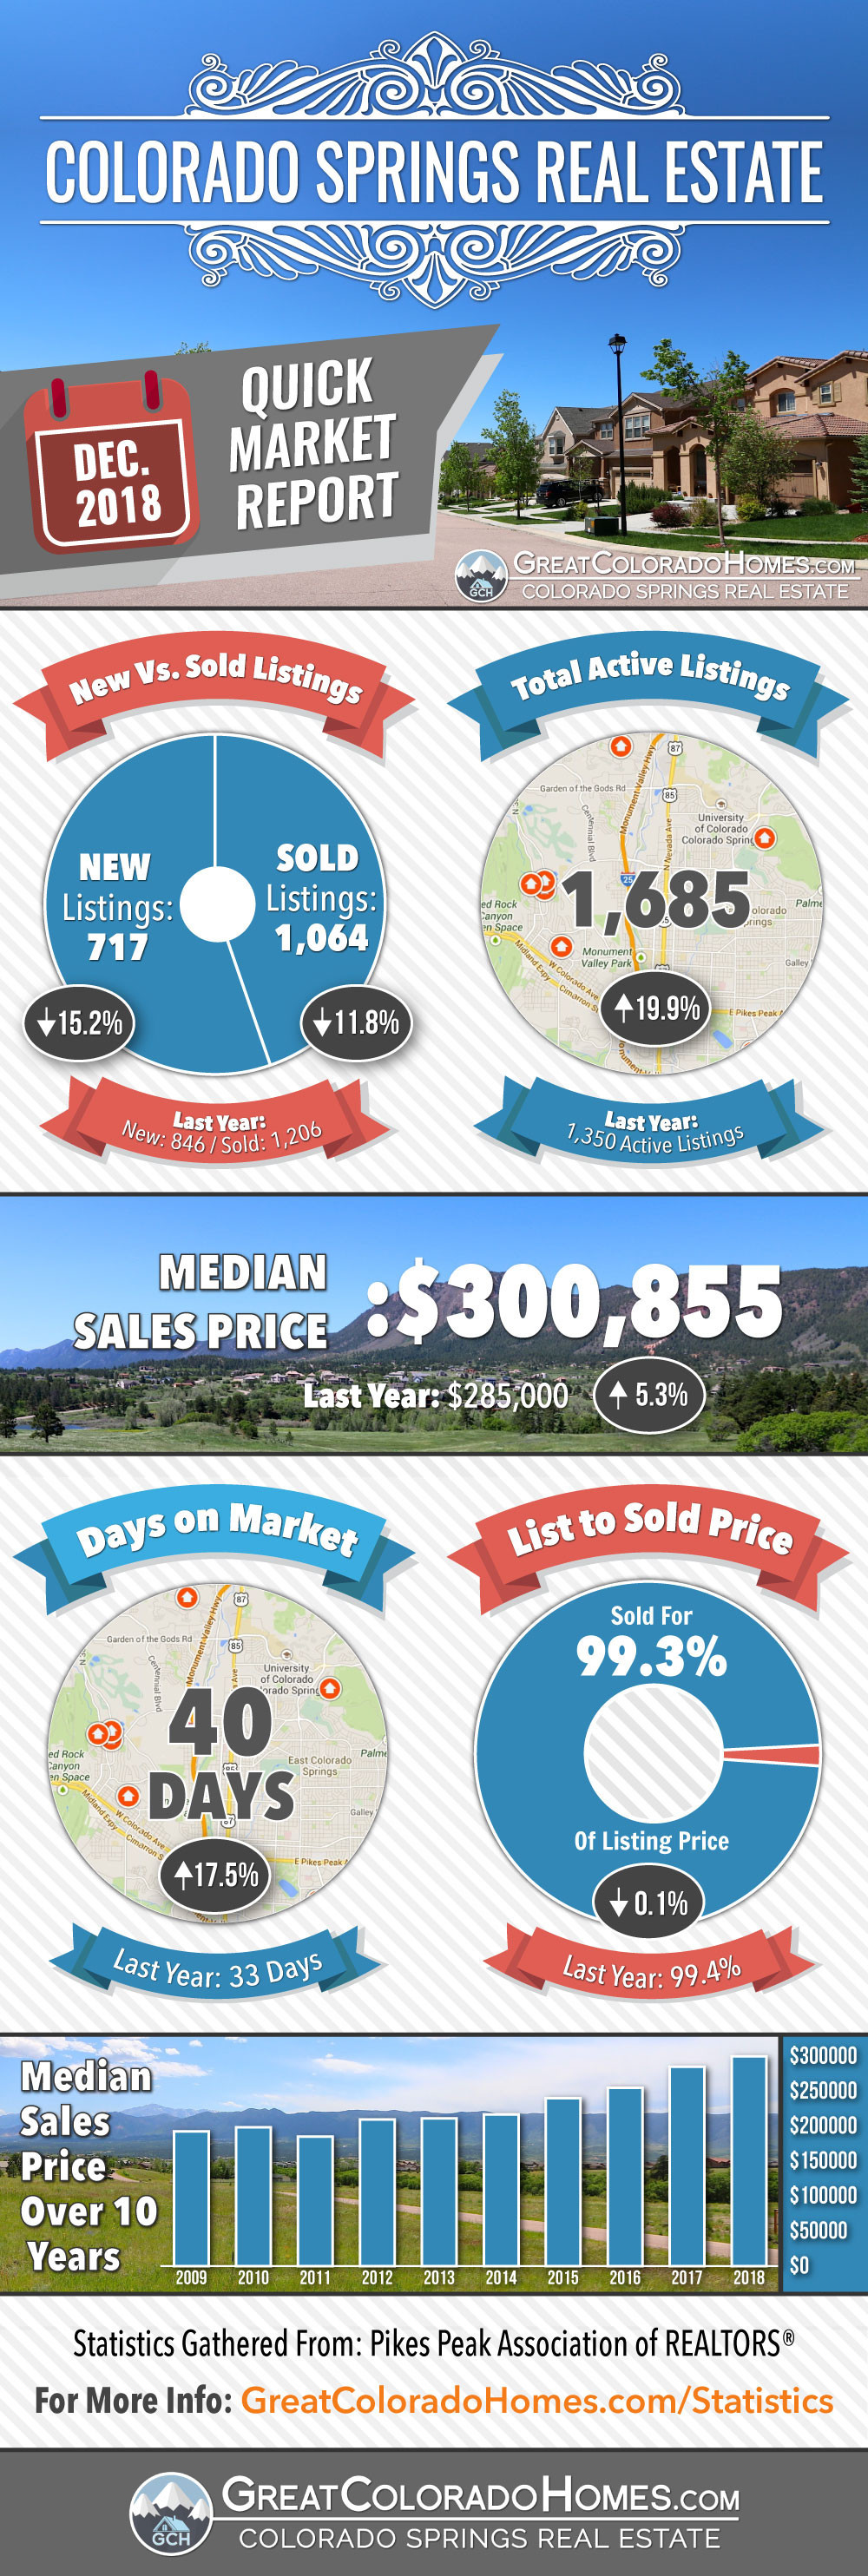 December 2018 Colorado Springs Real Estate Market Statistics Infographic